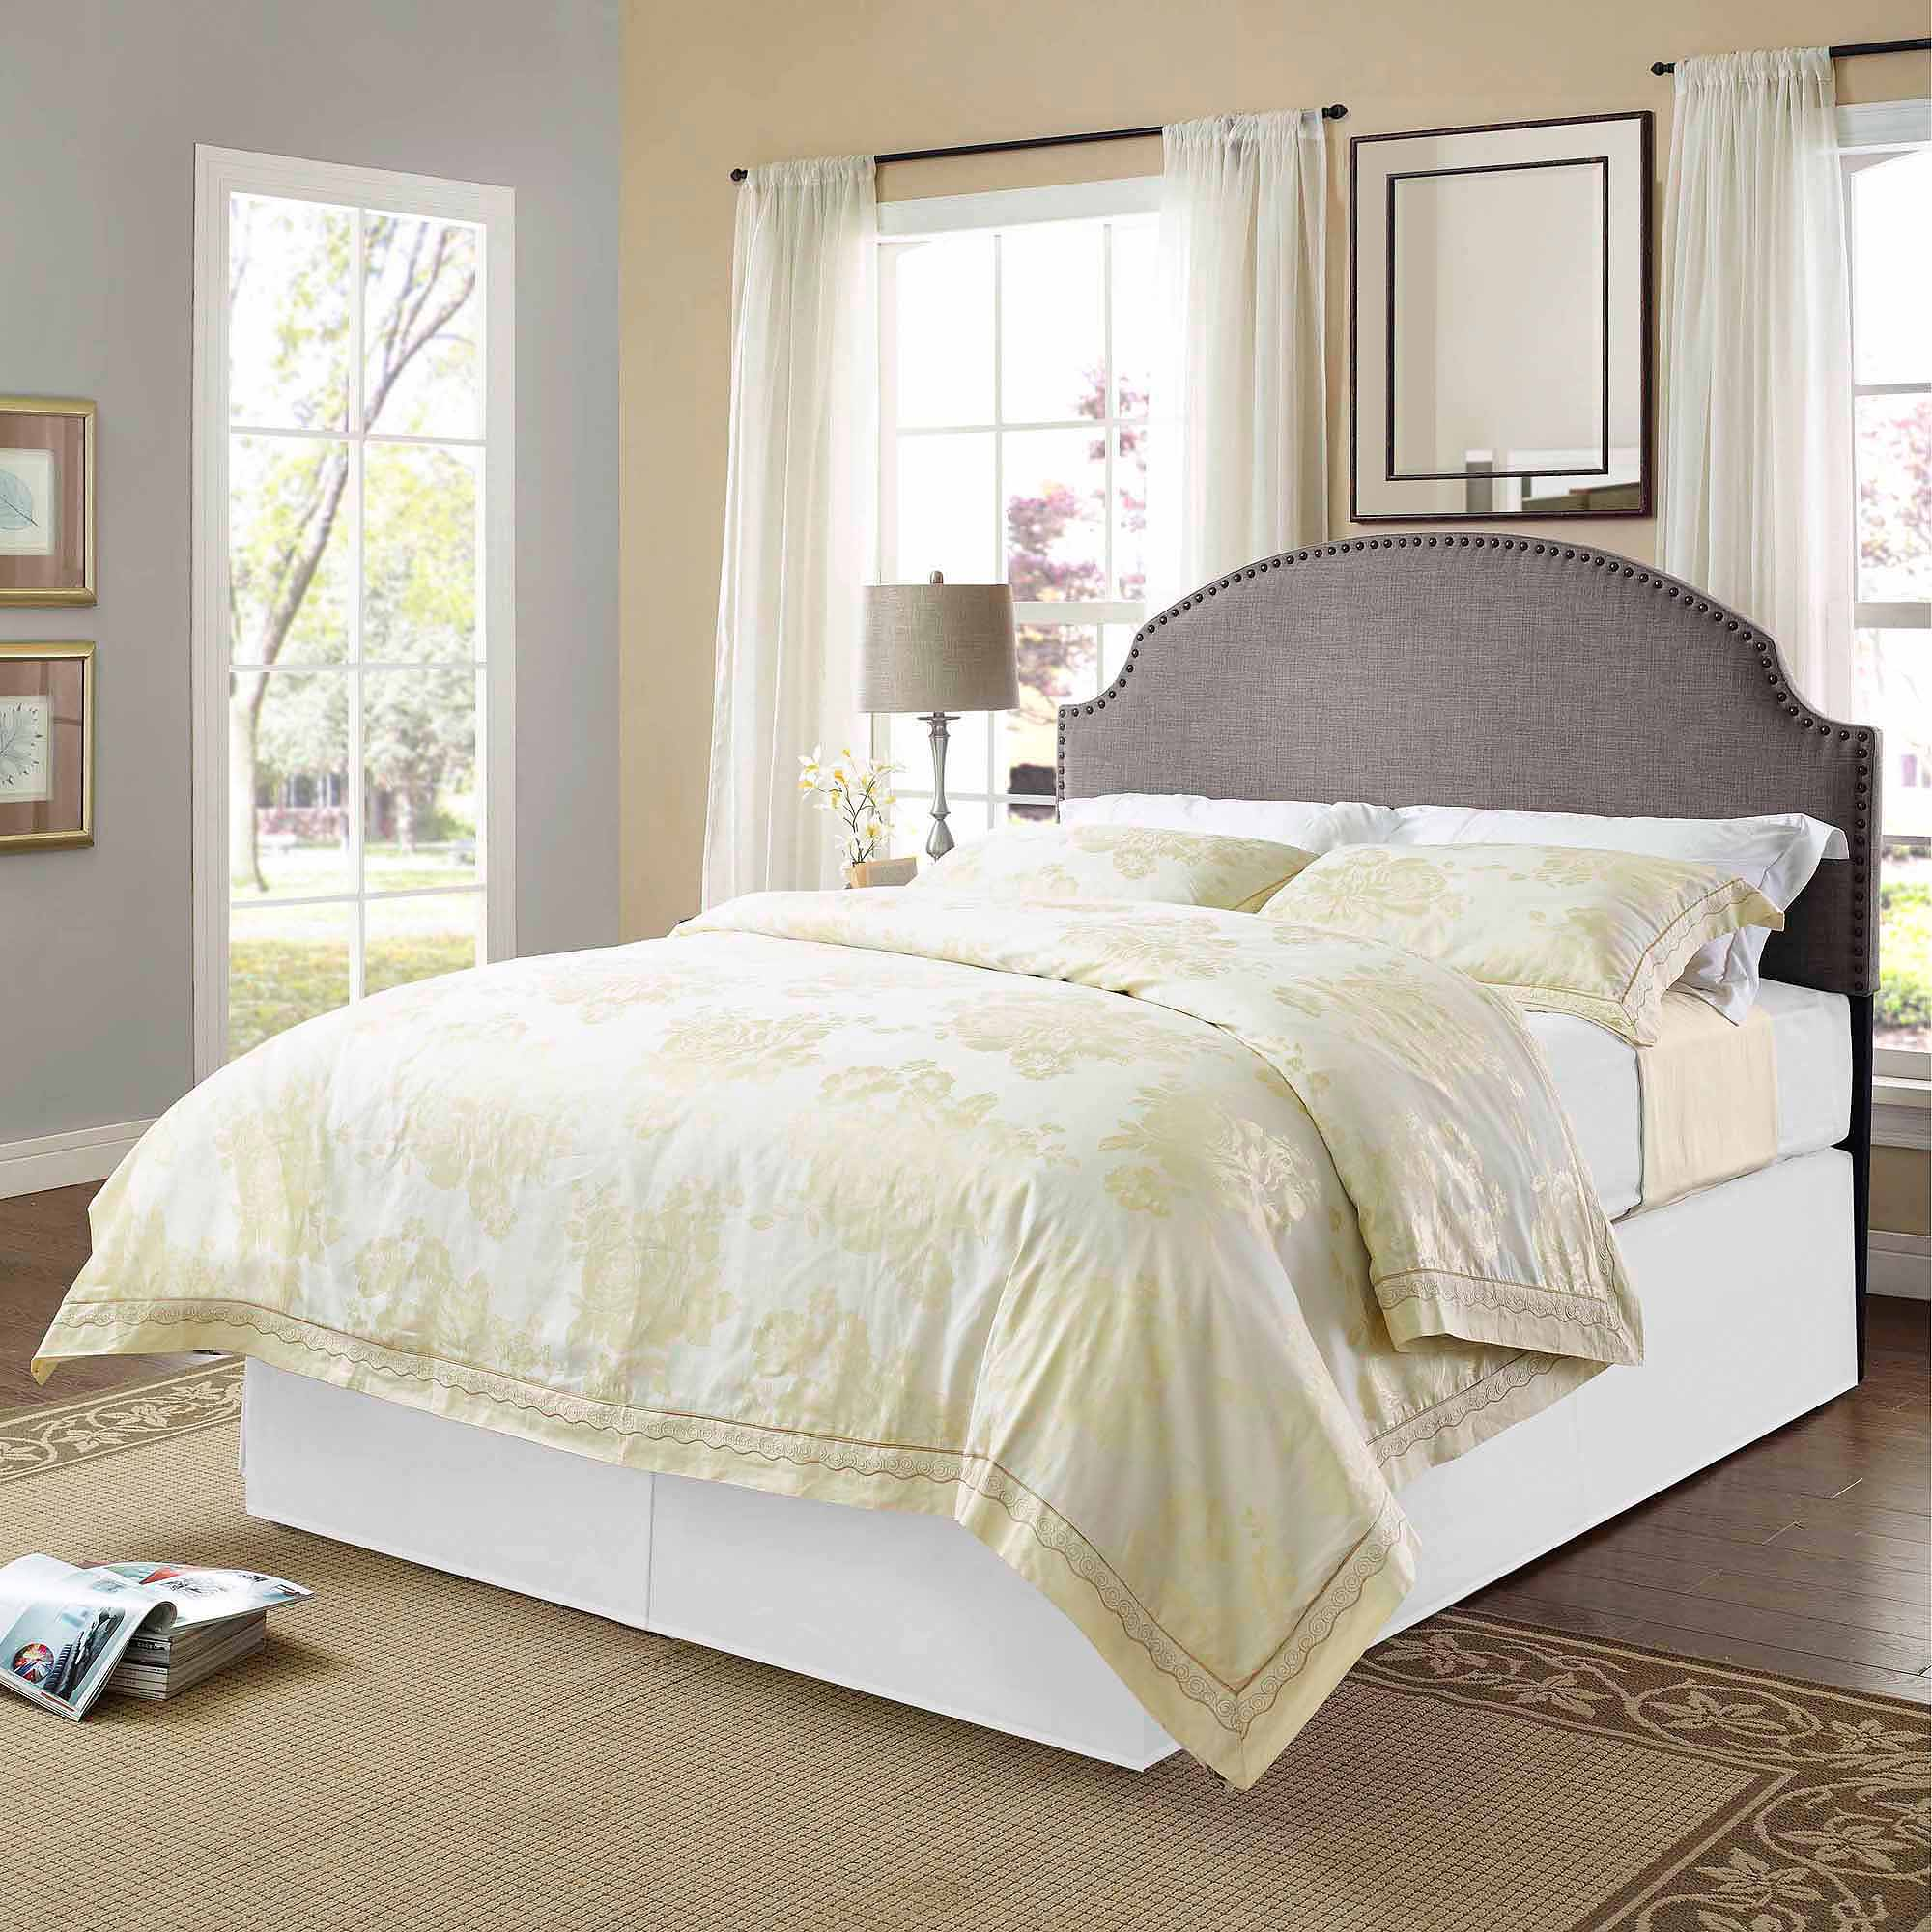 saratoga size upholstered headboard shot trim hollywood parker grey king detail nailhead full glam after diy master bed amazon headboards caifornia of